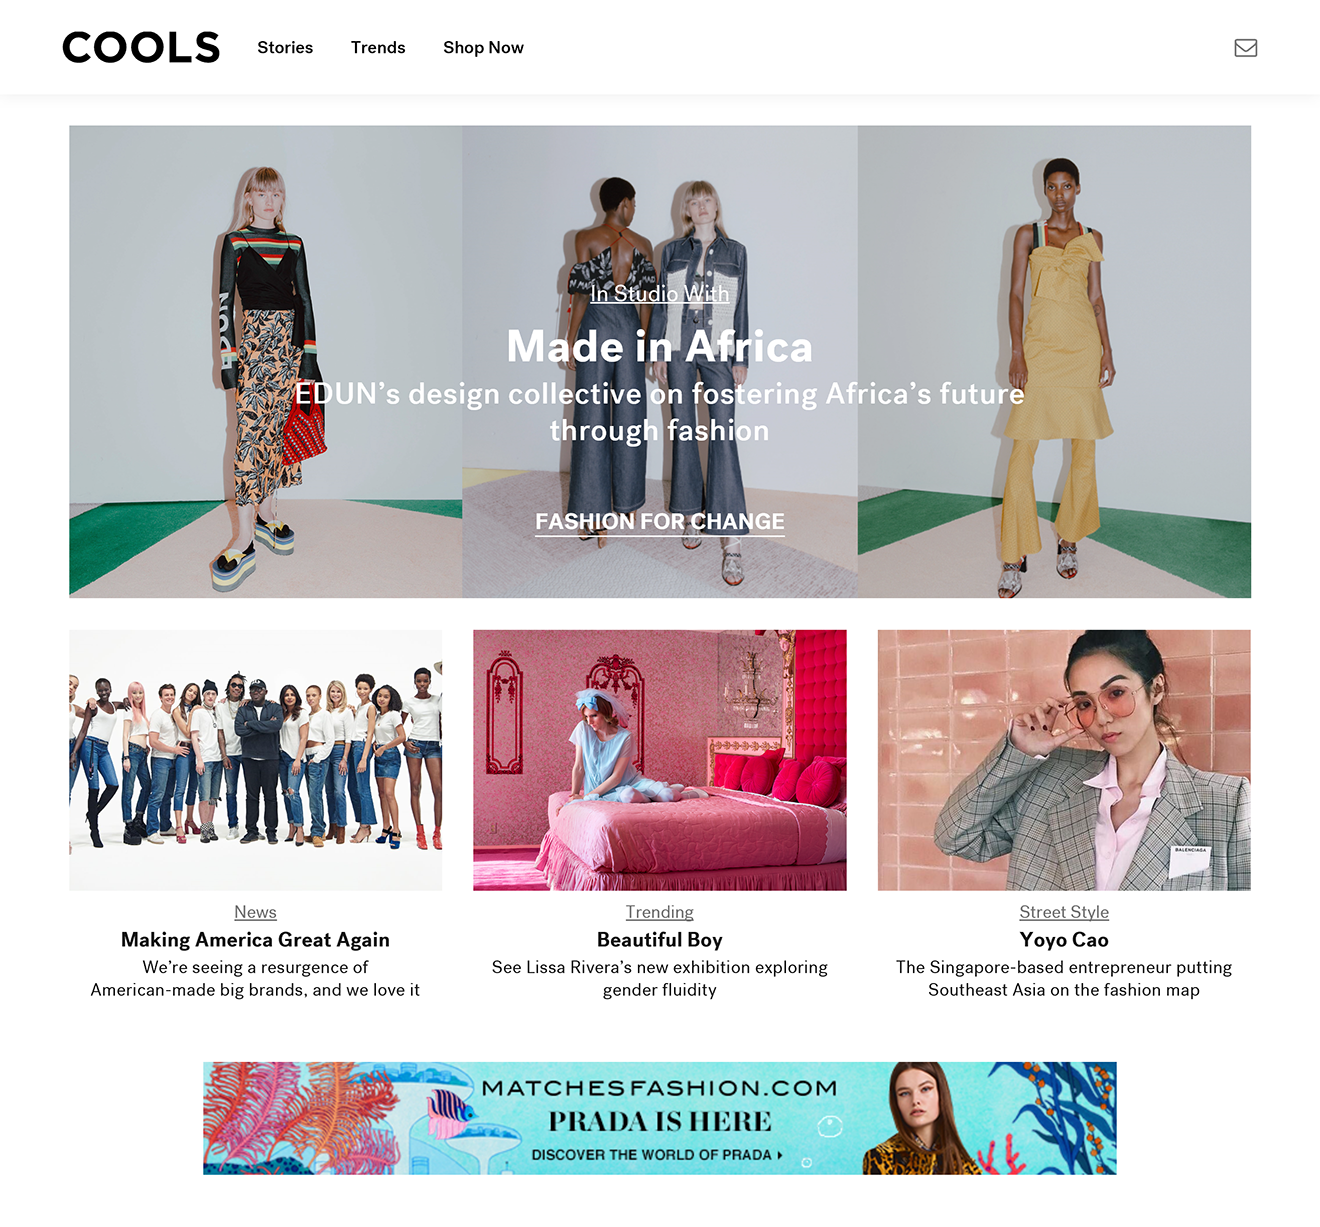 Fashion Big Data: Cools com | New Case Studies from Skein